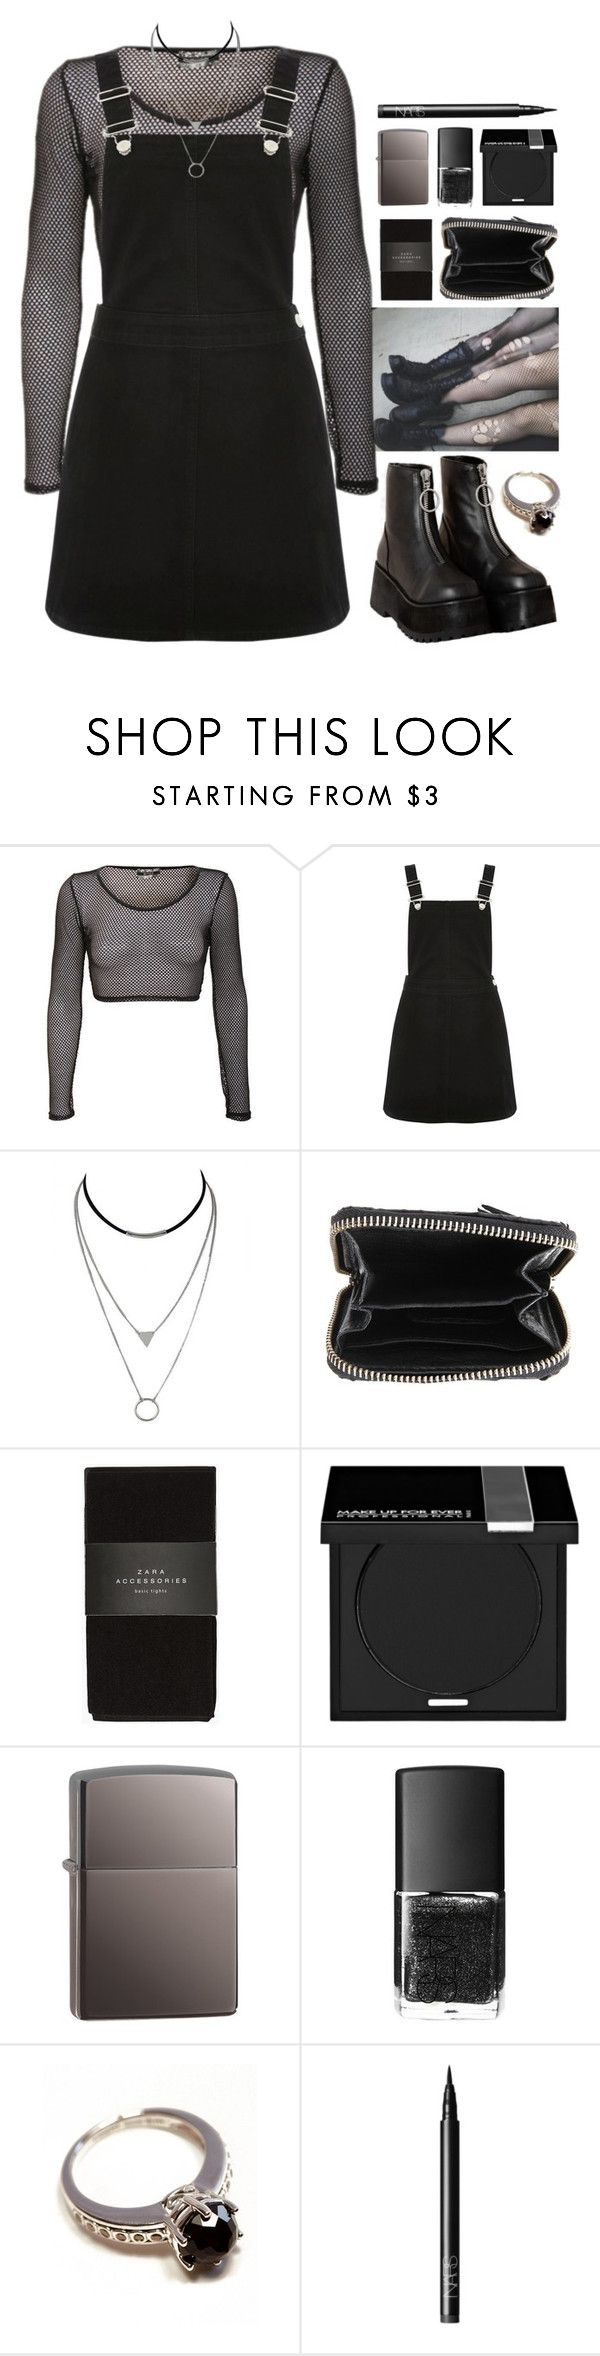 """""""So Emo"""" by brigi-bodoki ❤ liked on Polyvore featuring Oasis, Zadig & Voltaire, Zara, MAKE UP FOR EVER, Zippo, NARS Cosmetics and Anna Sheffield"""